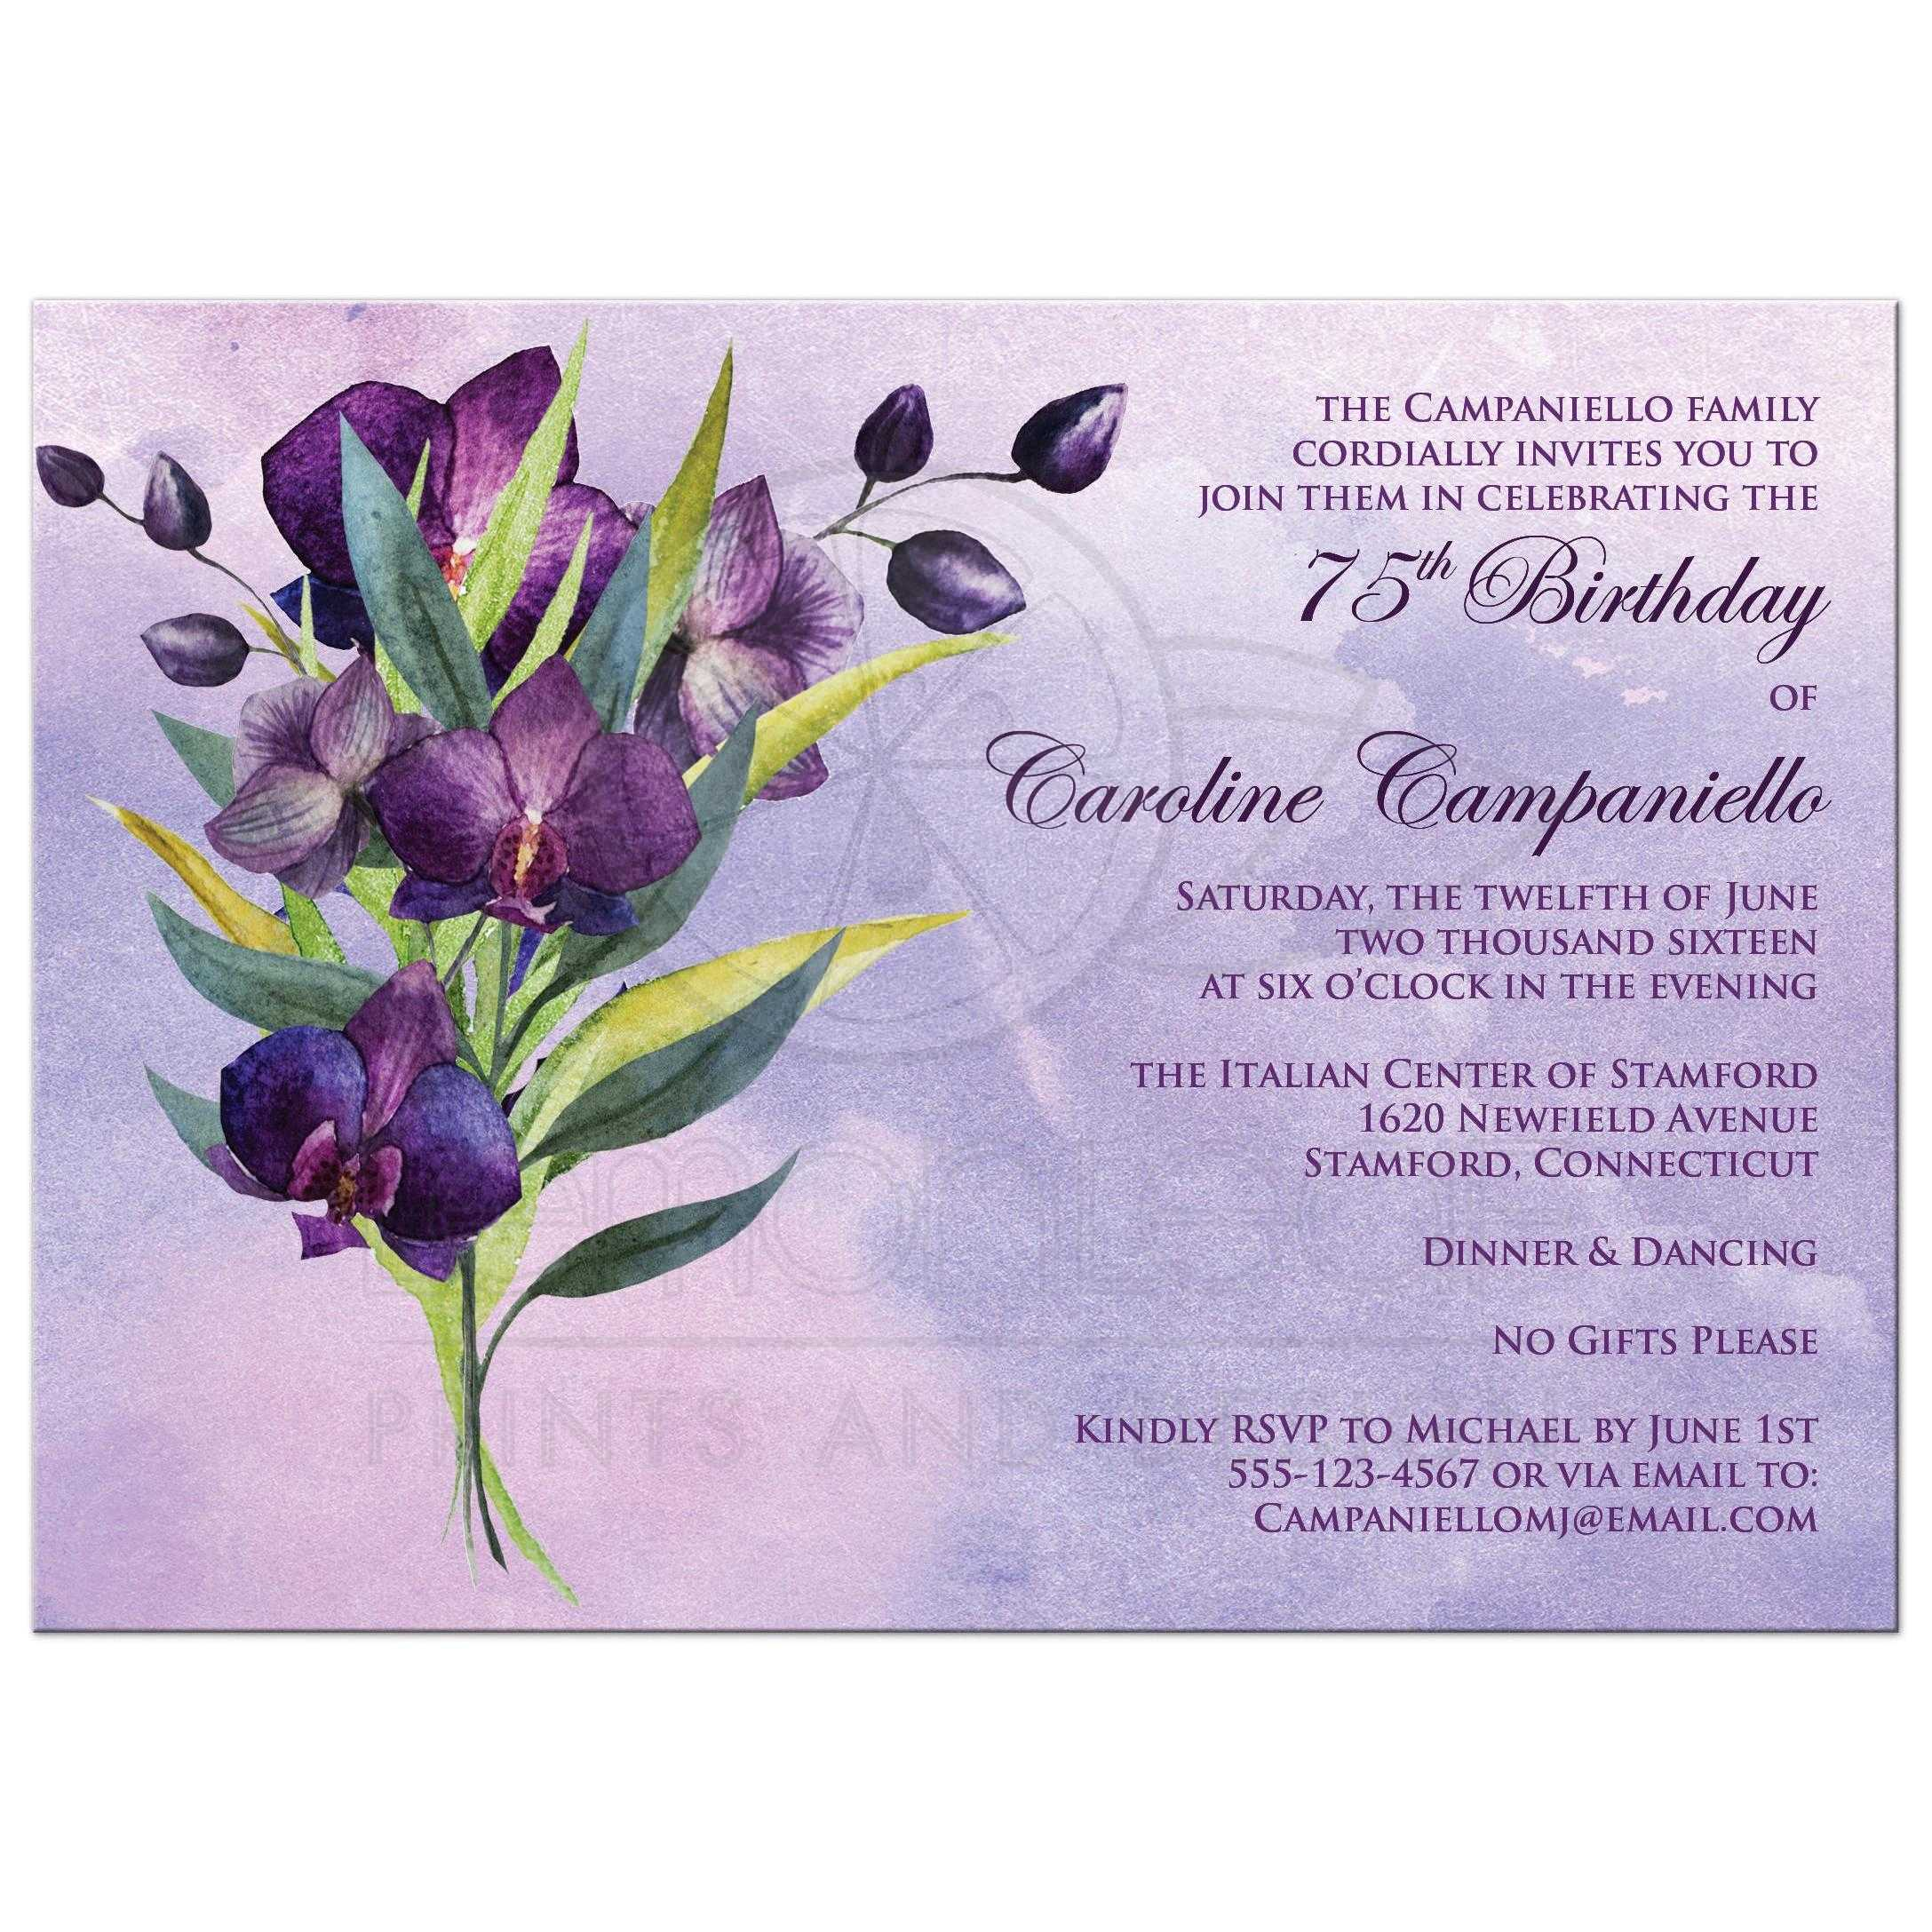 75th birthday party invitation purple orchids green foliage